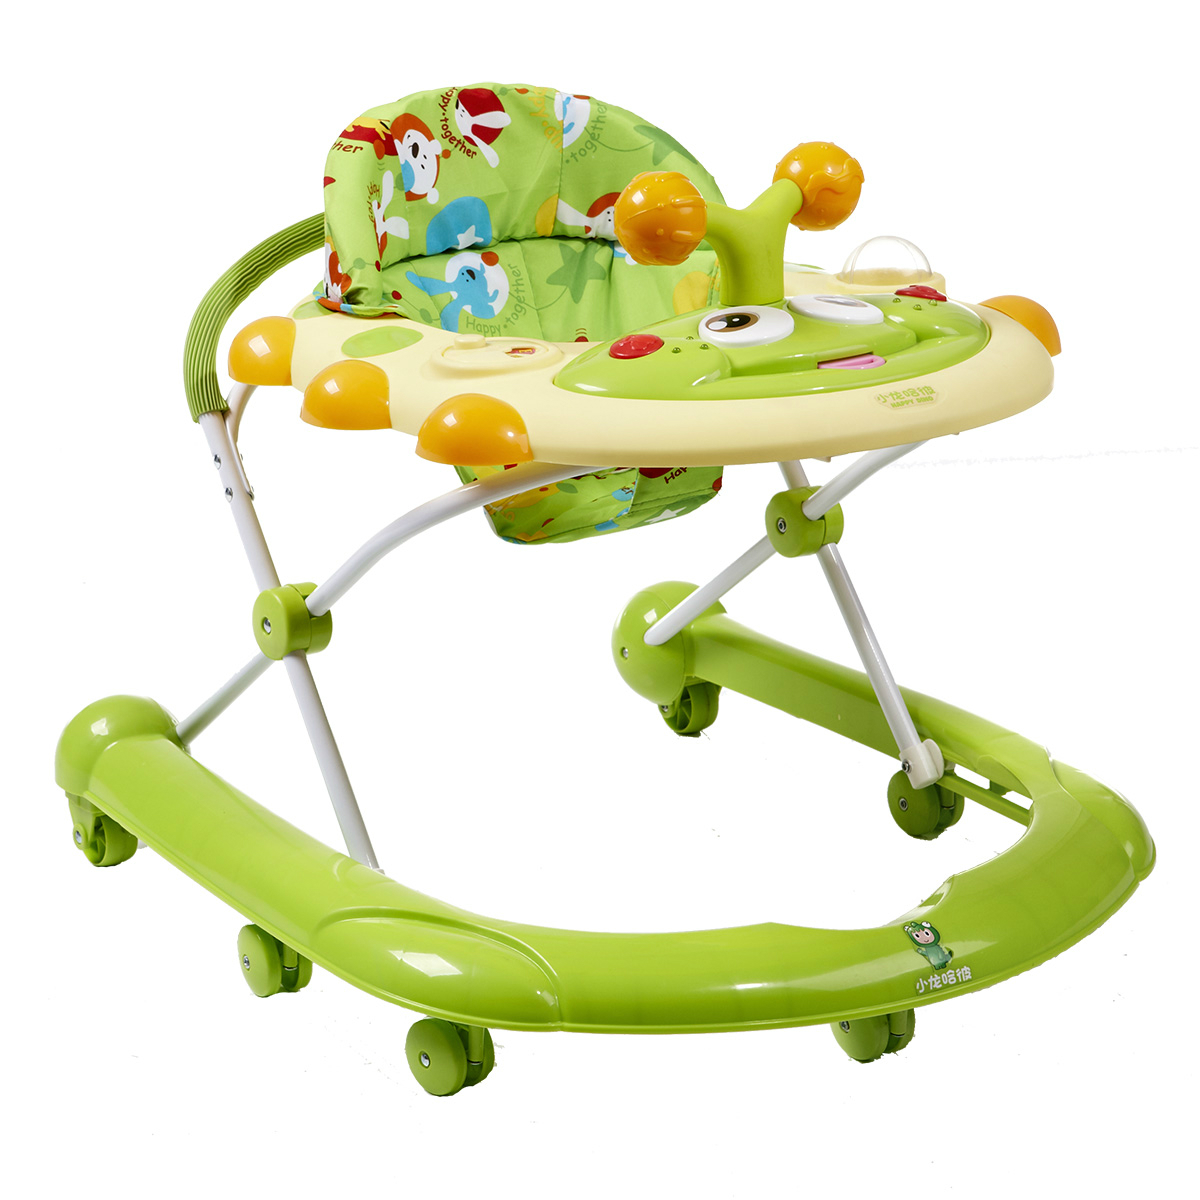 Best Selling 7-18 months Baby Car Anti Rollover Multifunctional Baby Walker U Type With Toys Plate Safety Folding Easy Step Car baby car rollover multifunctional music 6 7 18 months baby children learn driving